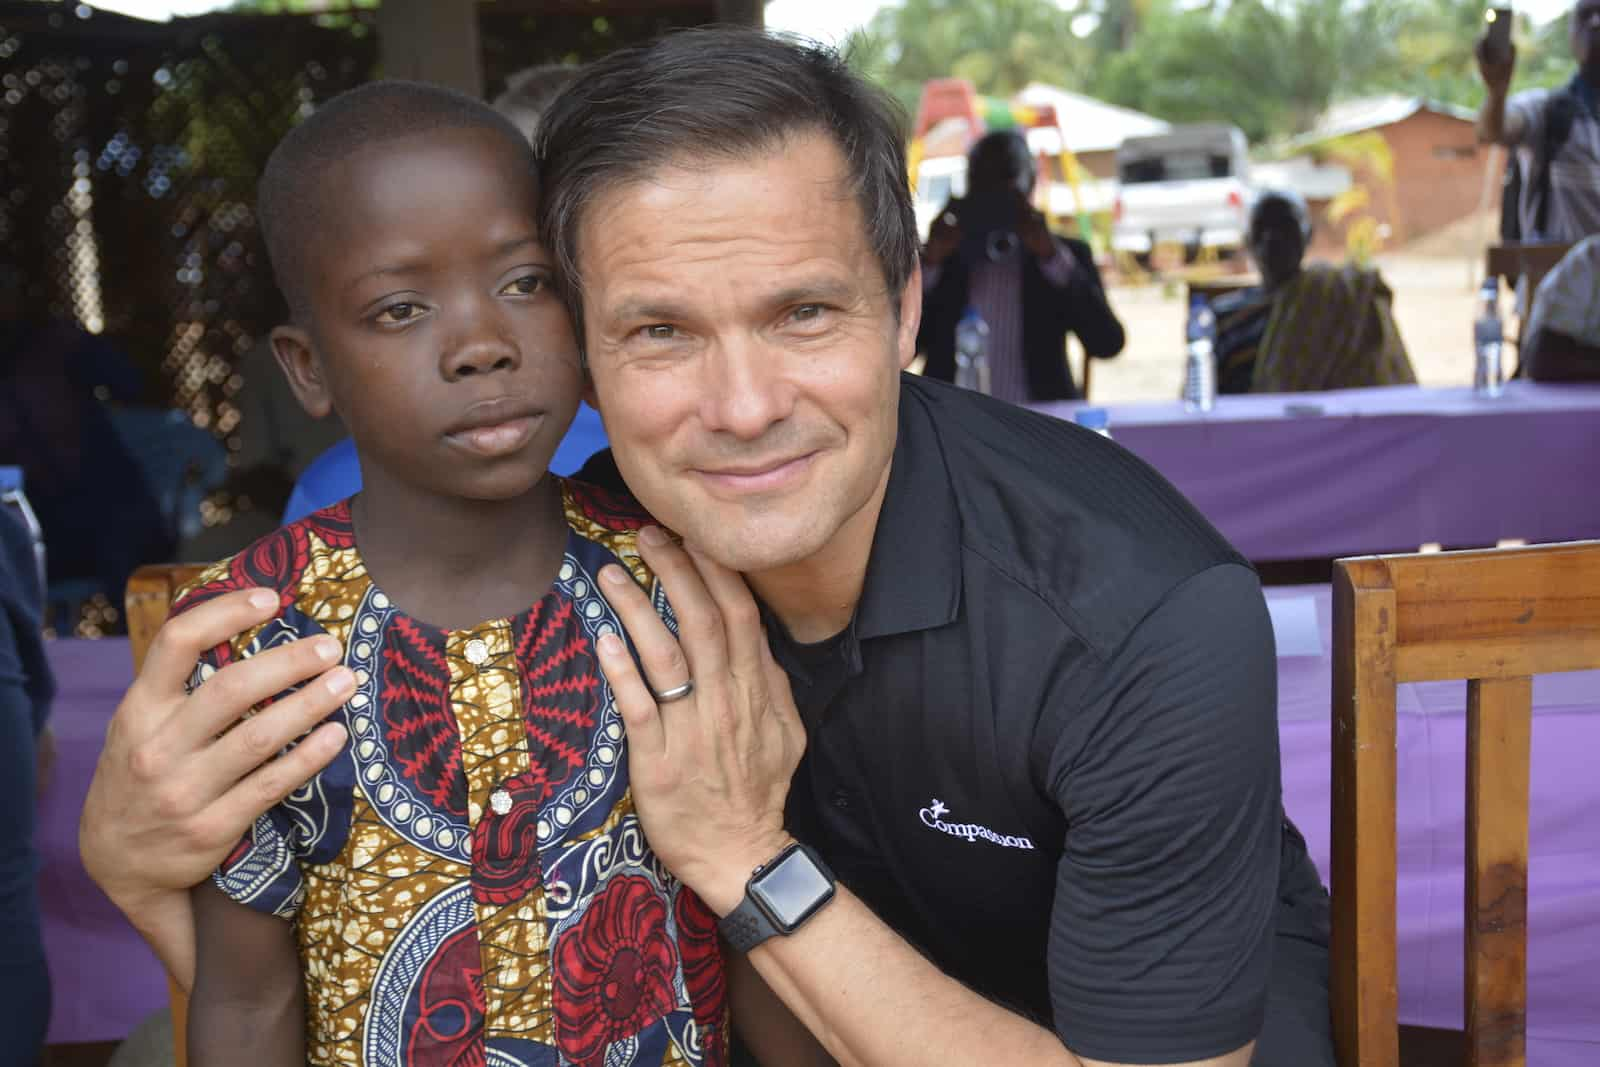 """A man, Santiago """"Jimmy"""" Mellado, wearing a black shirt that says """"Compassion"""" stoops down and puts his arms around a young boy wearing a yellow and red Togolese shirt."""